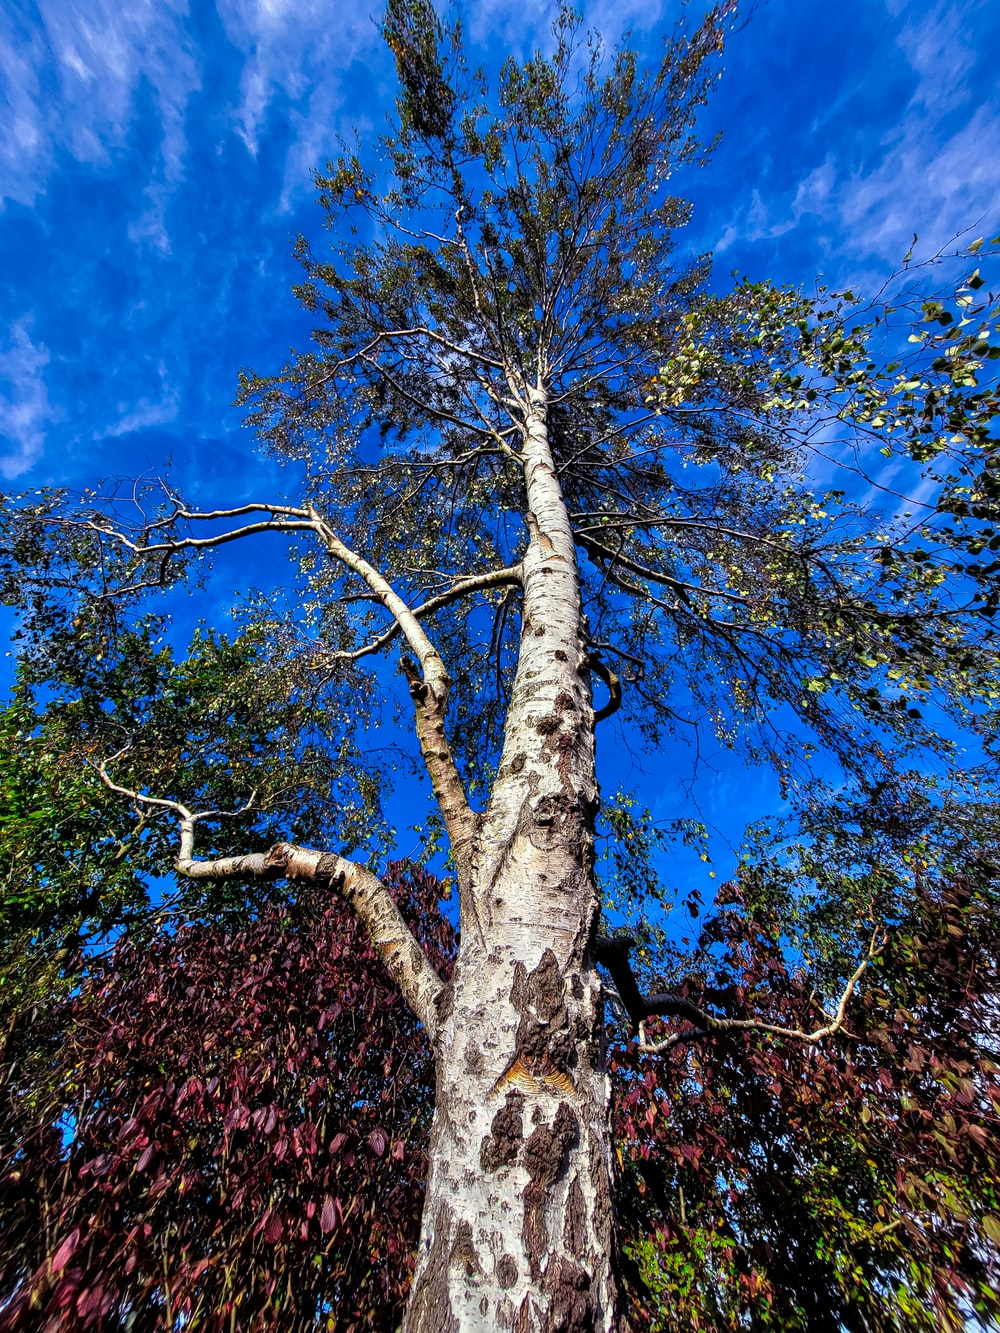 brown and green tree under blue sky during daytime